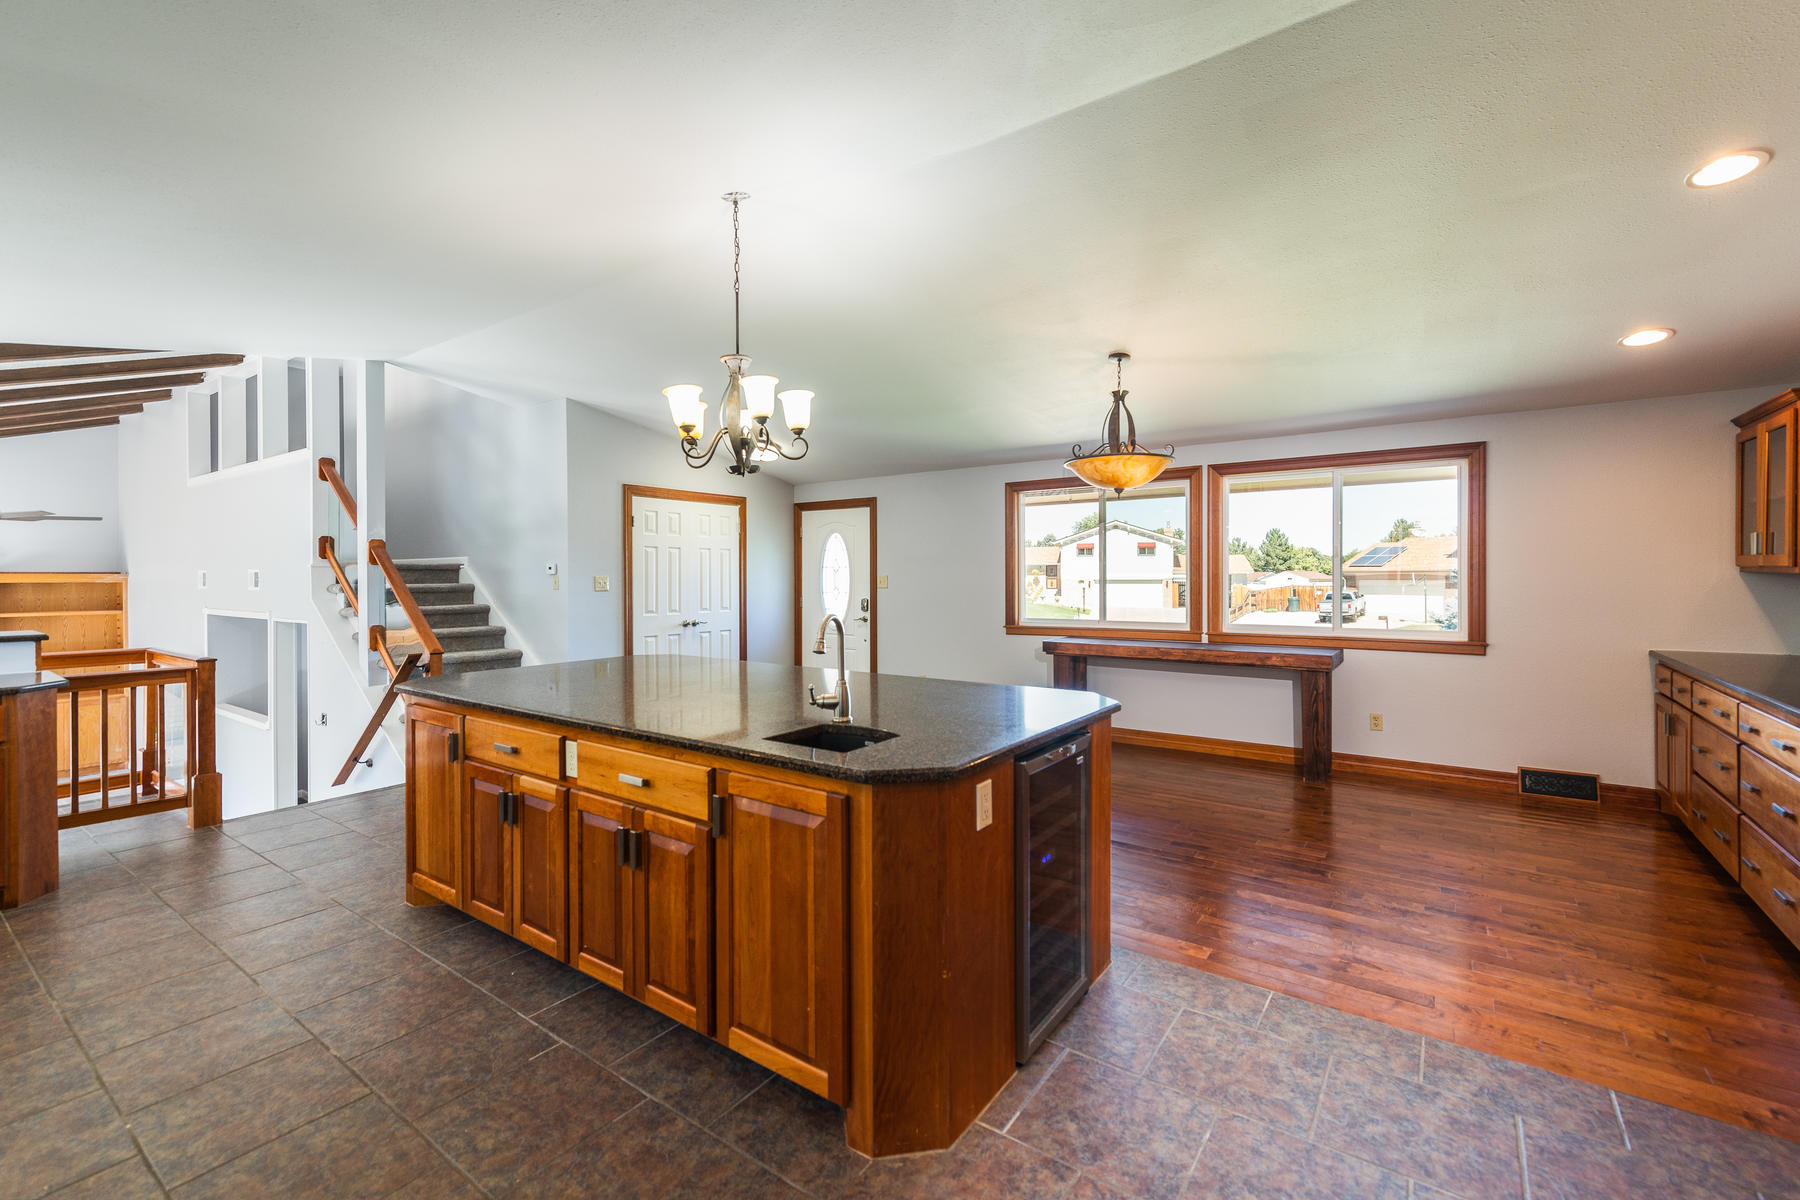 Additional photo for property listing at Westminster Home with Gourmet Kitchen on Spacious Lot! 6571 W 73rd Ave Westminster, Colorado 80003 United States